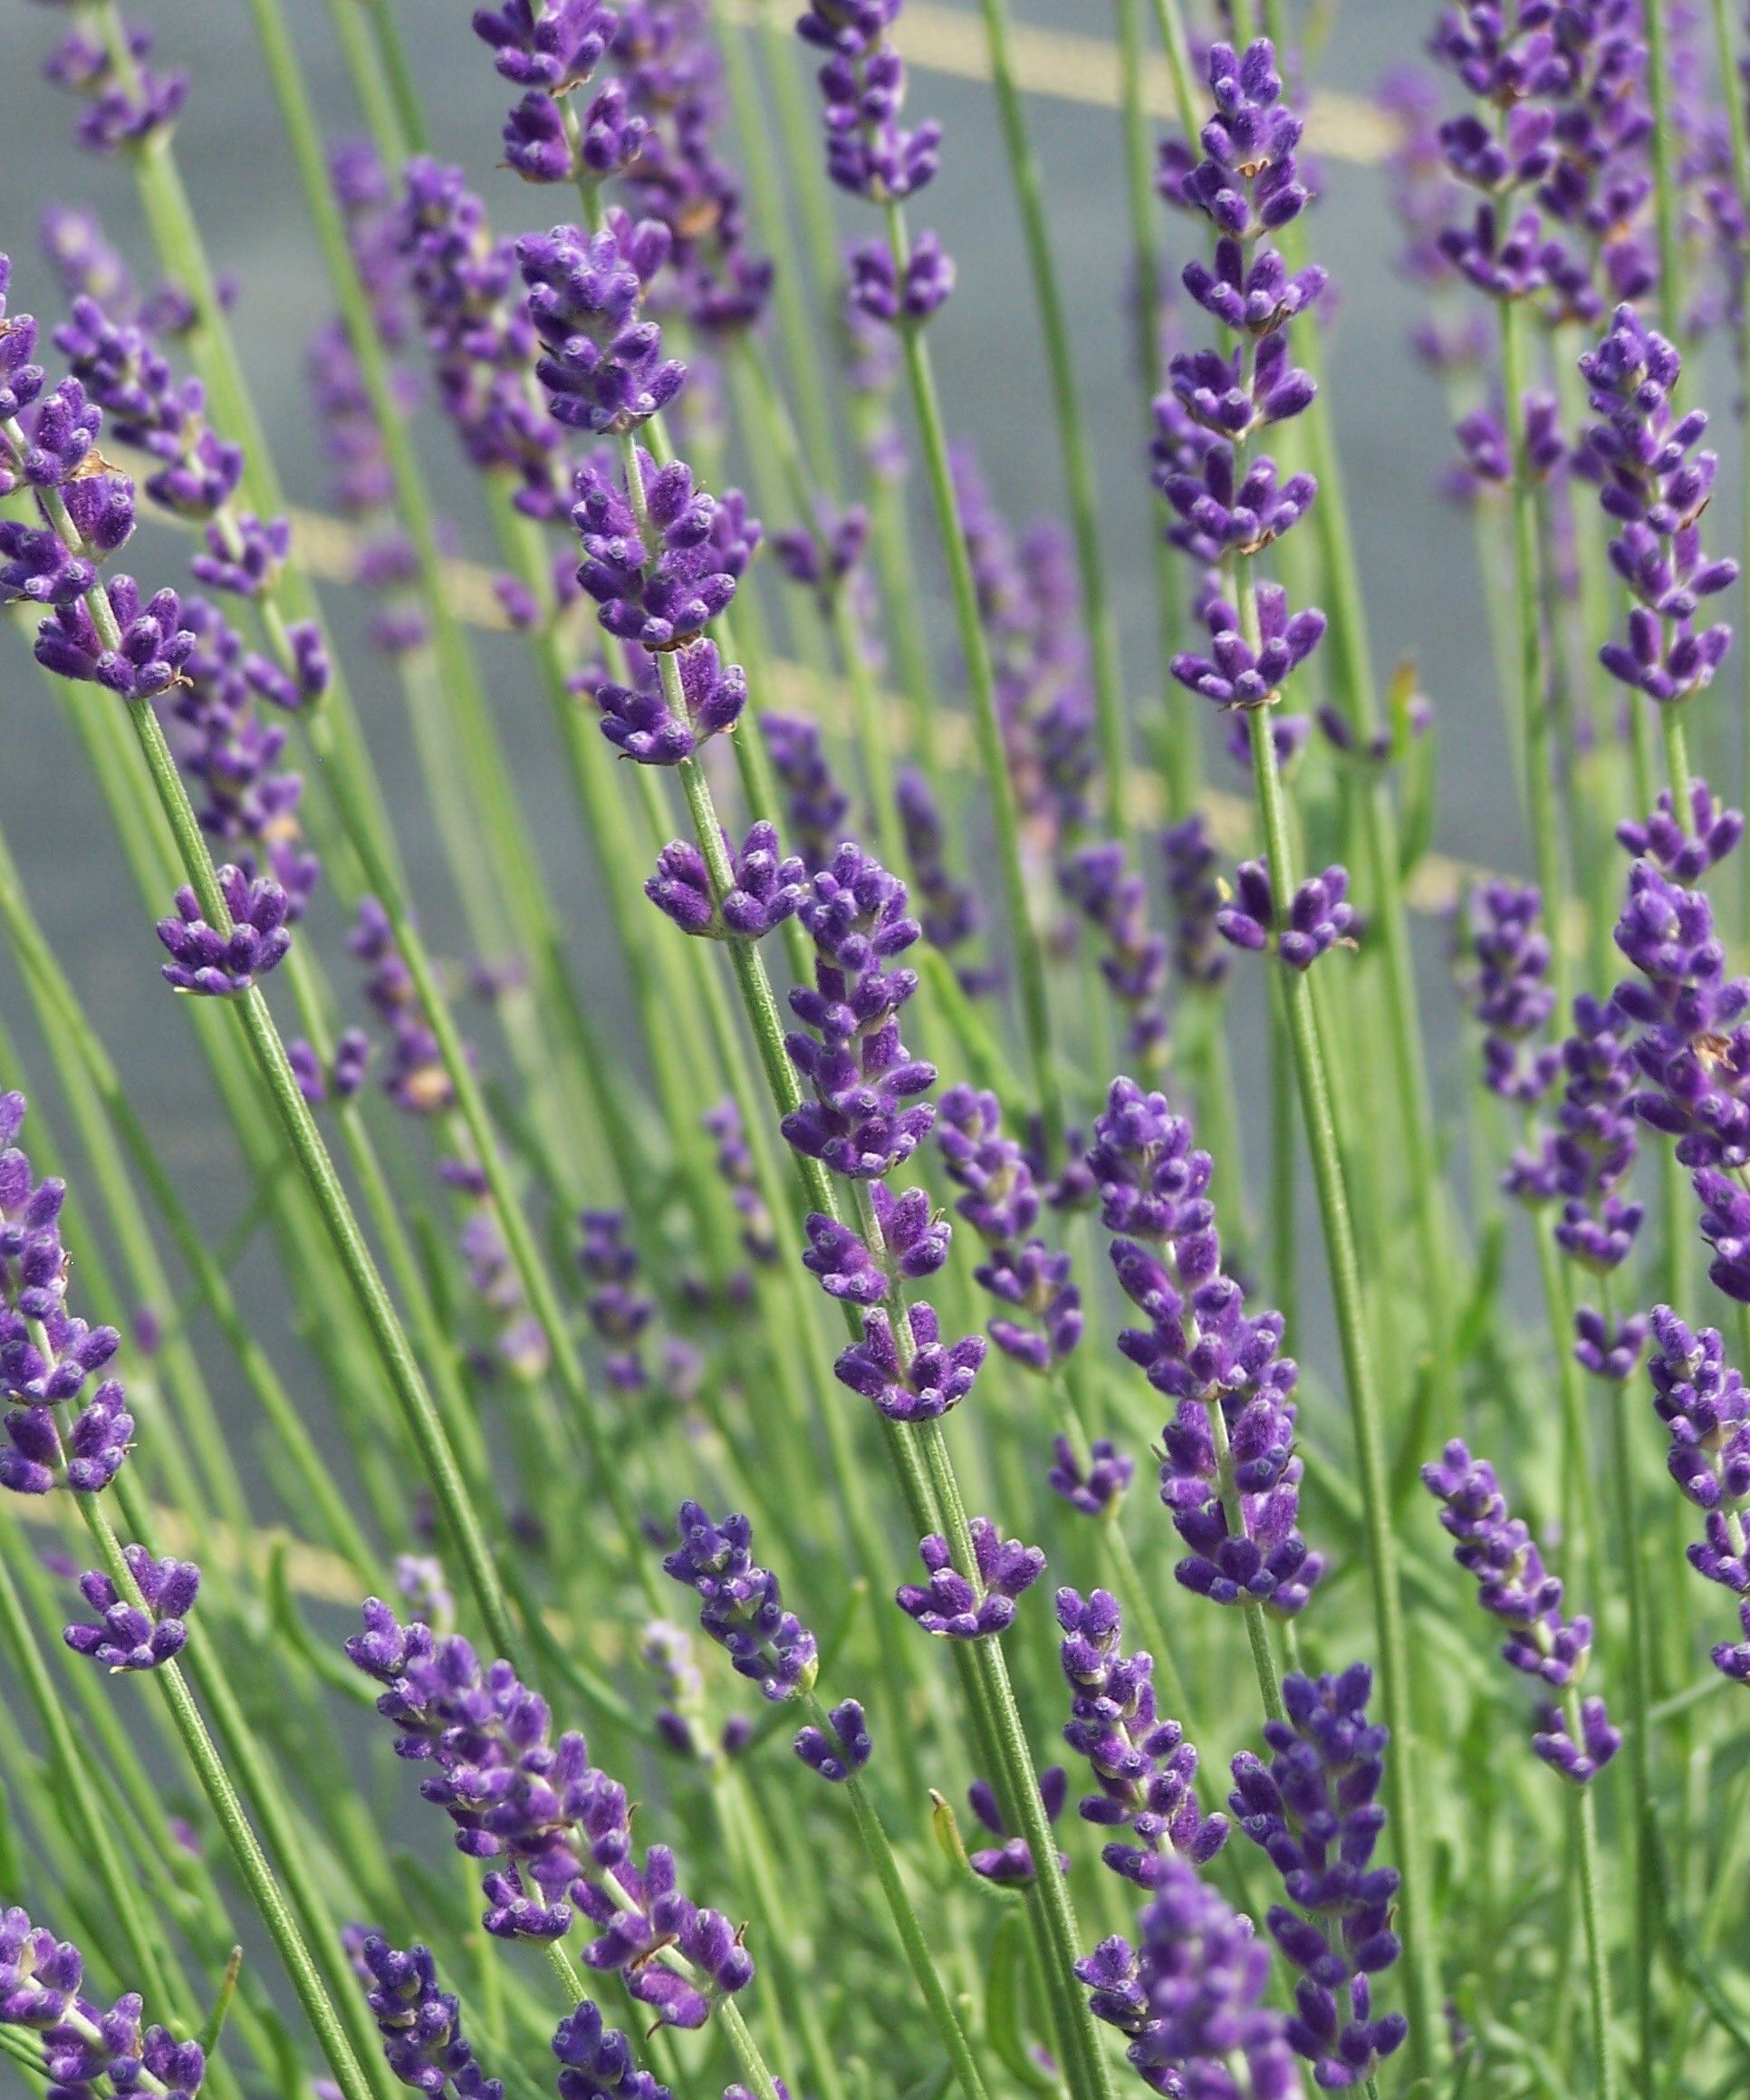 New jersey monmouth county morganville - Pleasant Valley Lavender Farm Morganville Nj Bring Your Dog And Relax